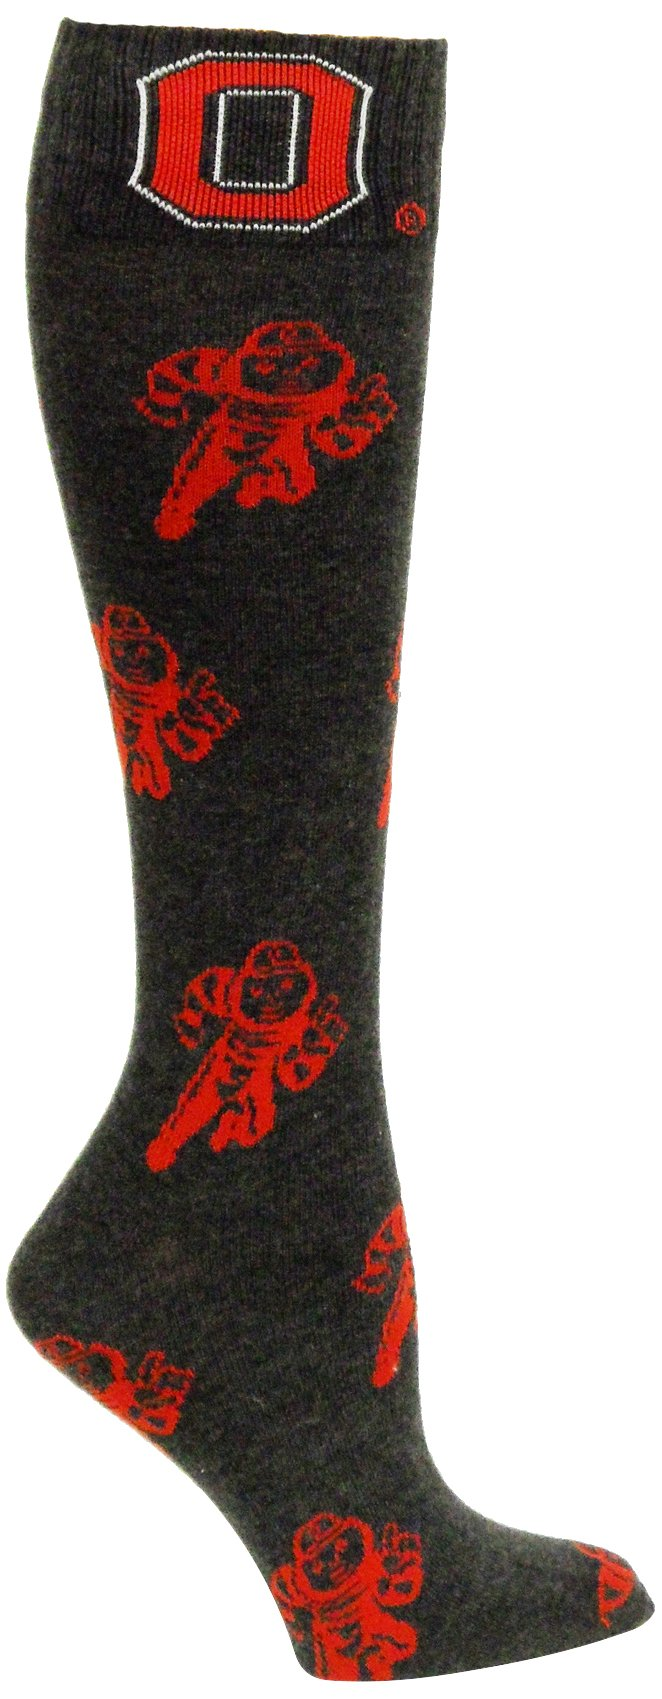 NCAA Ohio State Buckeyes Charcoal Gray Red Brutus Dress Socks by Donegal Bay